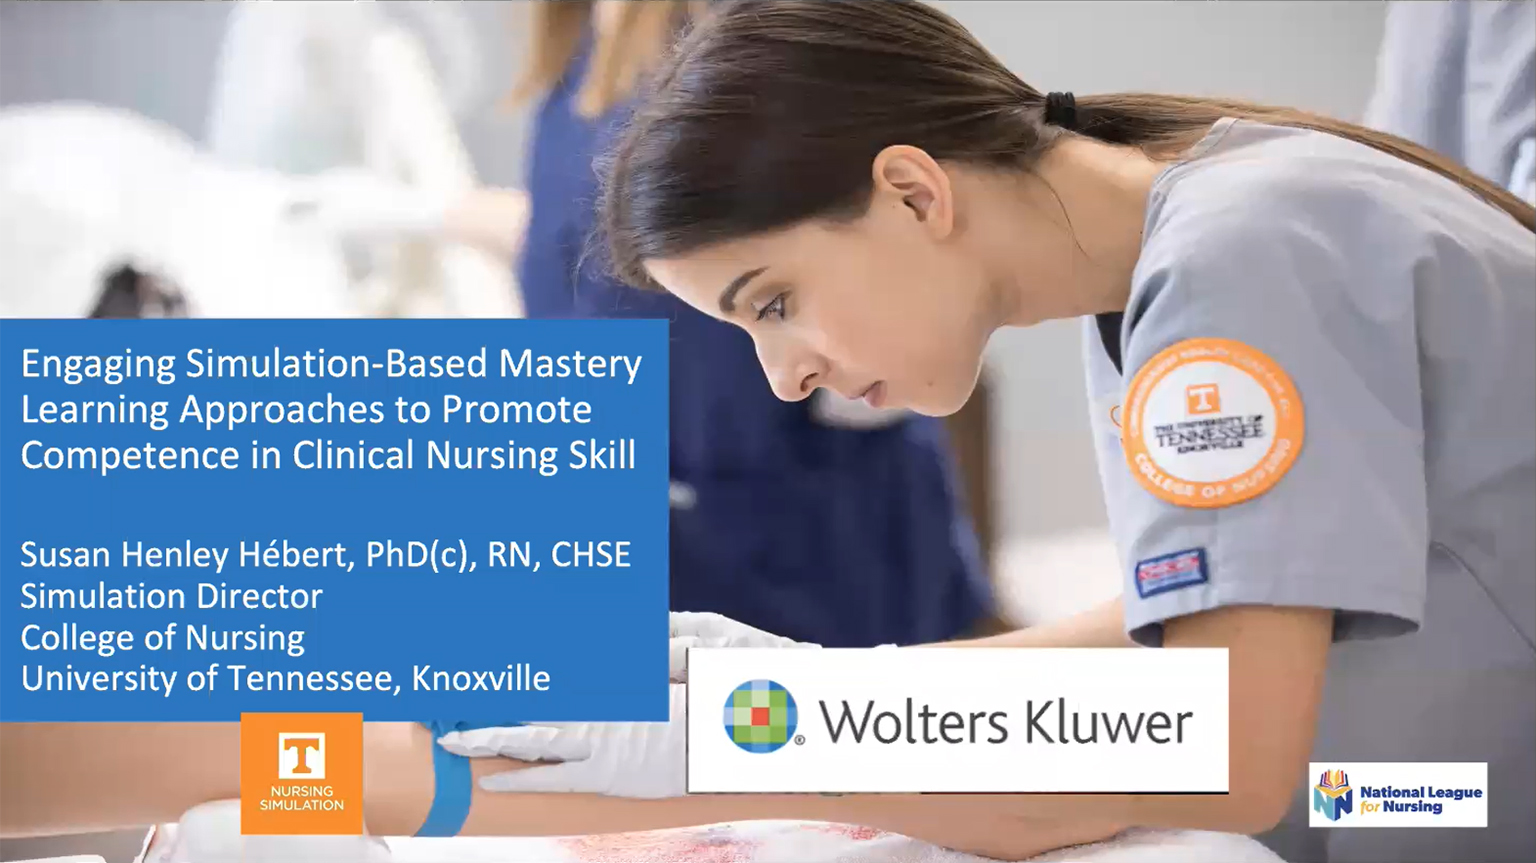 Screenshot of Engaging simulation-based mastery learning approaches to promote competence in clinical nursing skills video